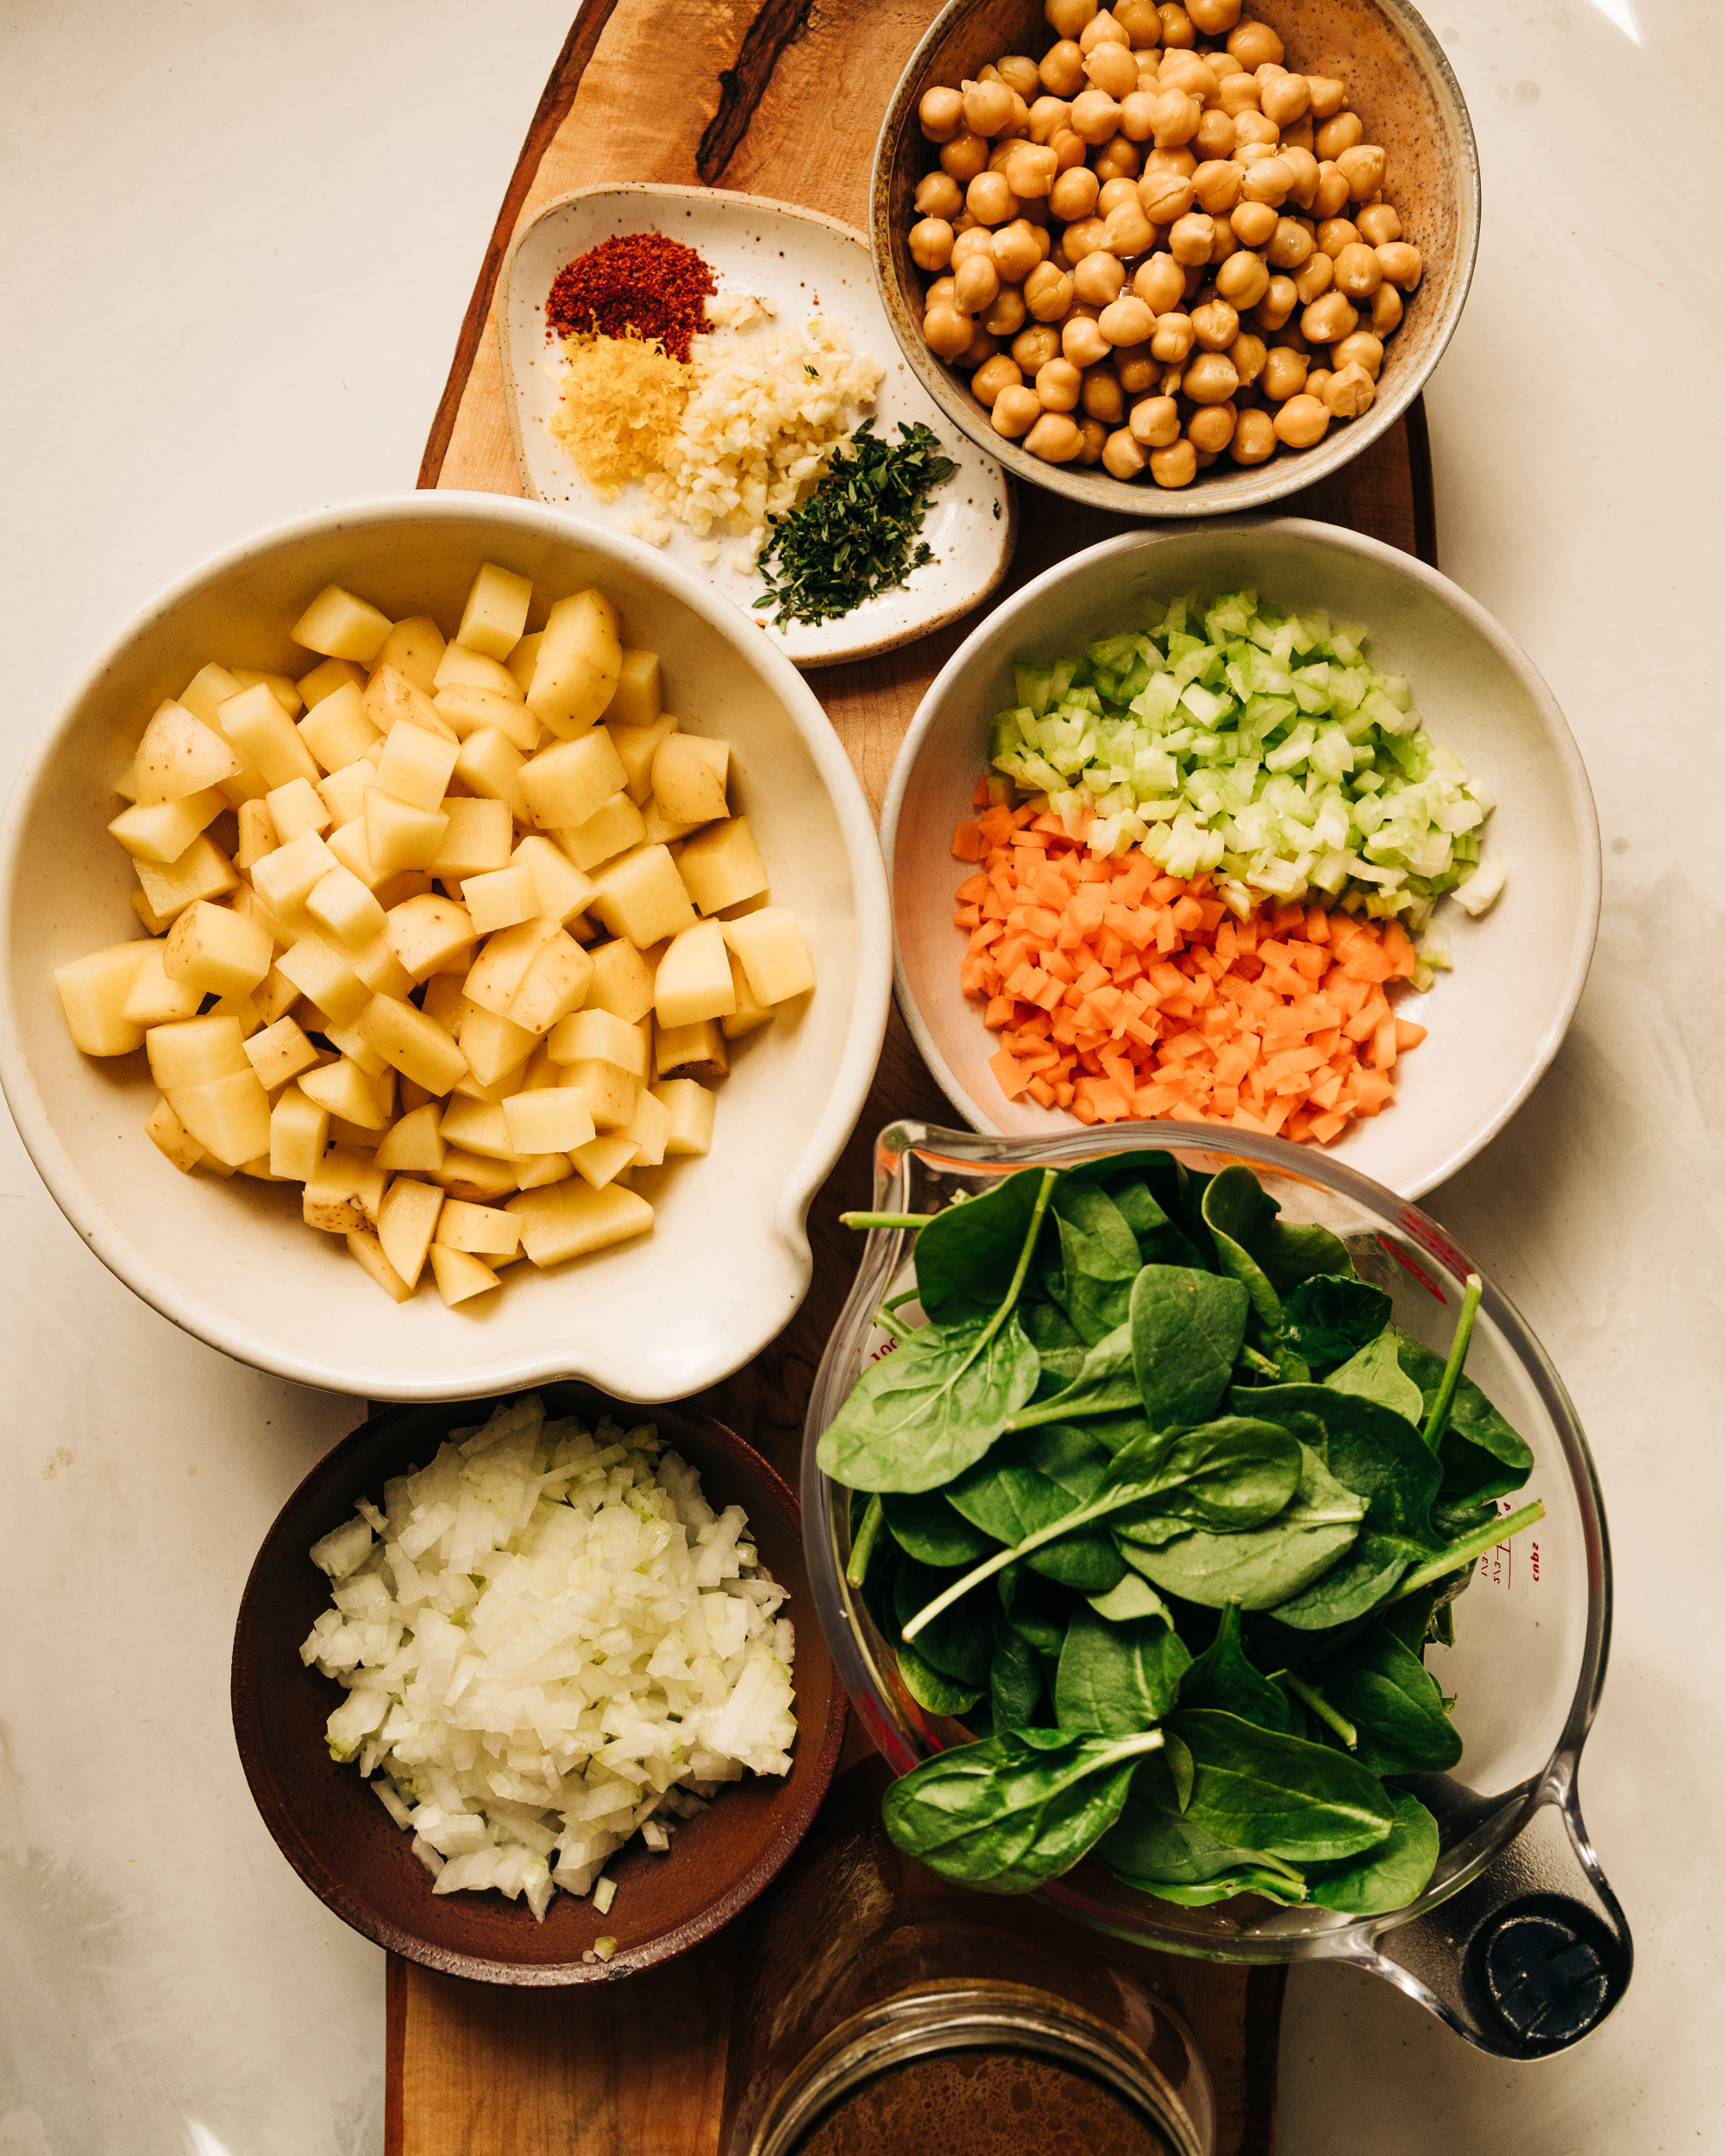 An overhead shot of prepped and chopped ingredients including celery, carrots, onions, baby spinach, minced garlic, thyme, and more,